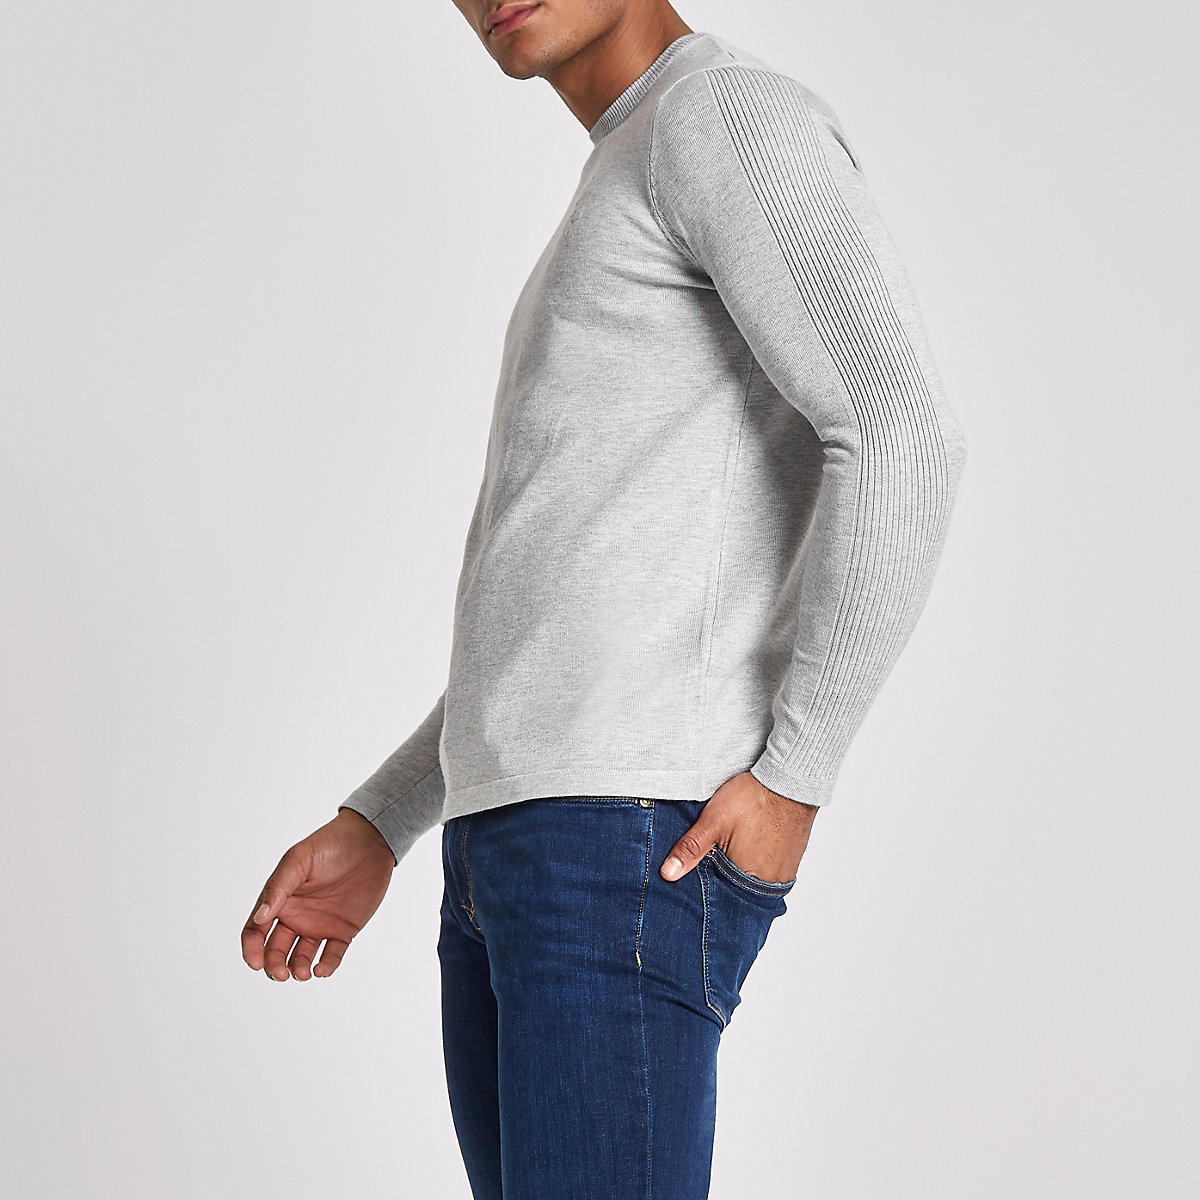 Grey 'R96' slim fit crew neck sweater